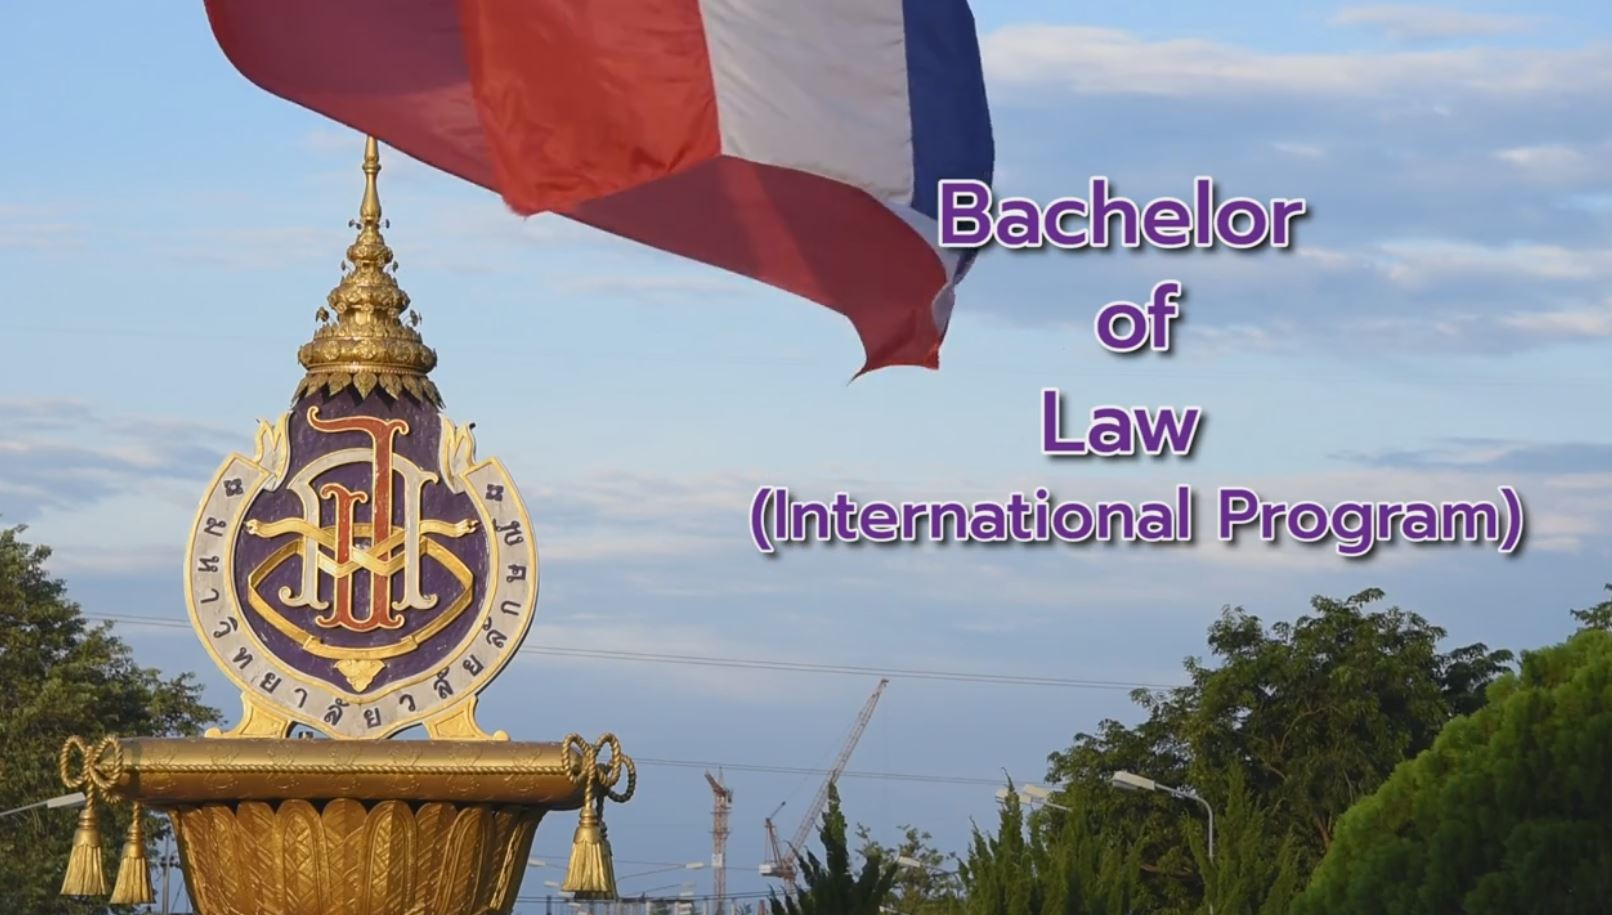 Bachelor of Laws Program (International Program) WALAILAK UNIVERSITY